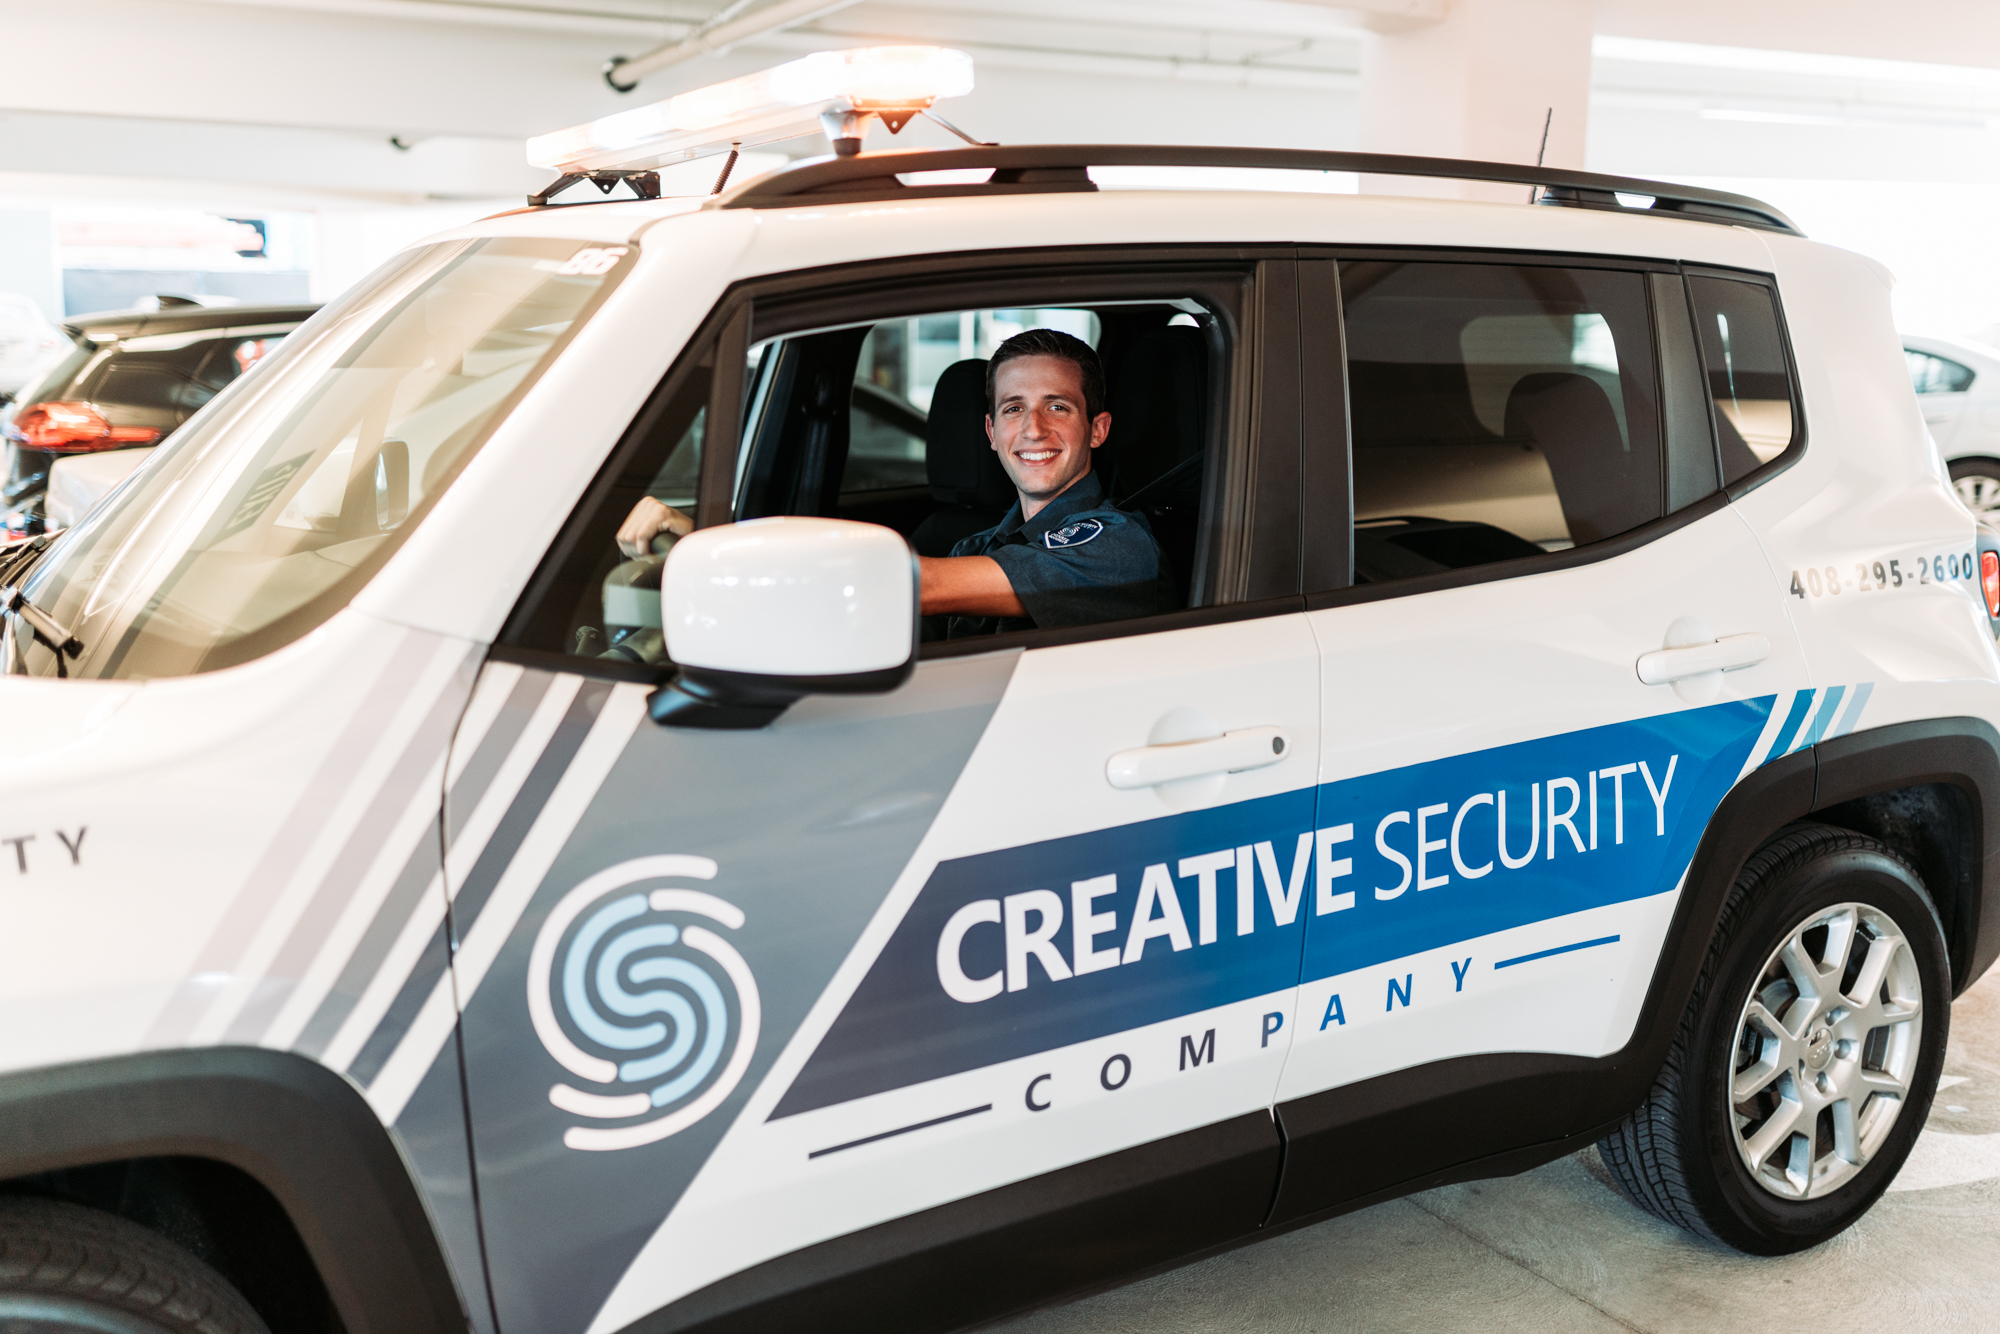 Mobile Patrol deters criminals from Your Bay Area business